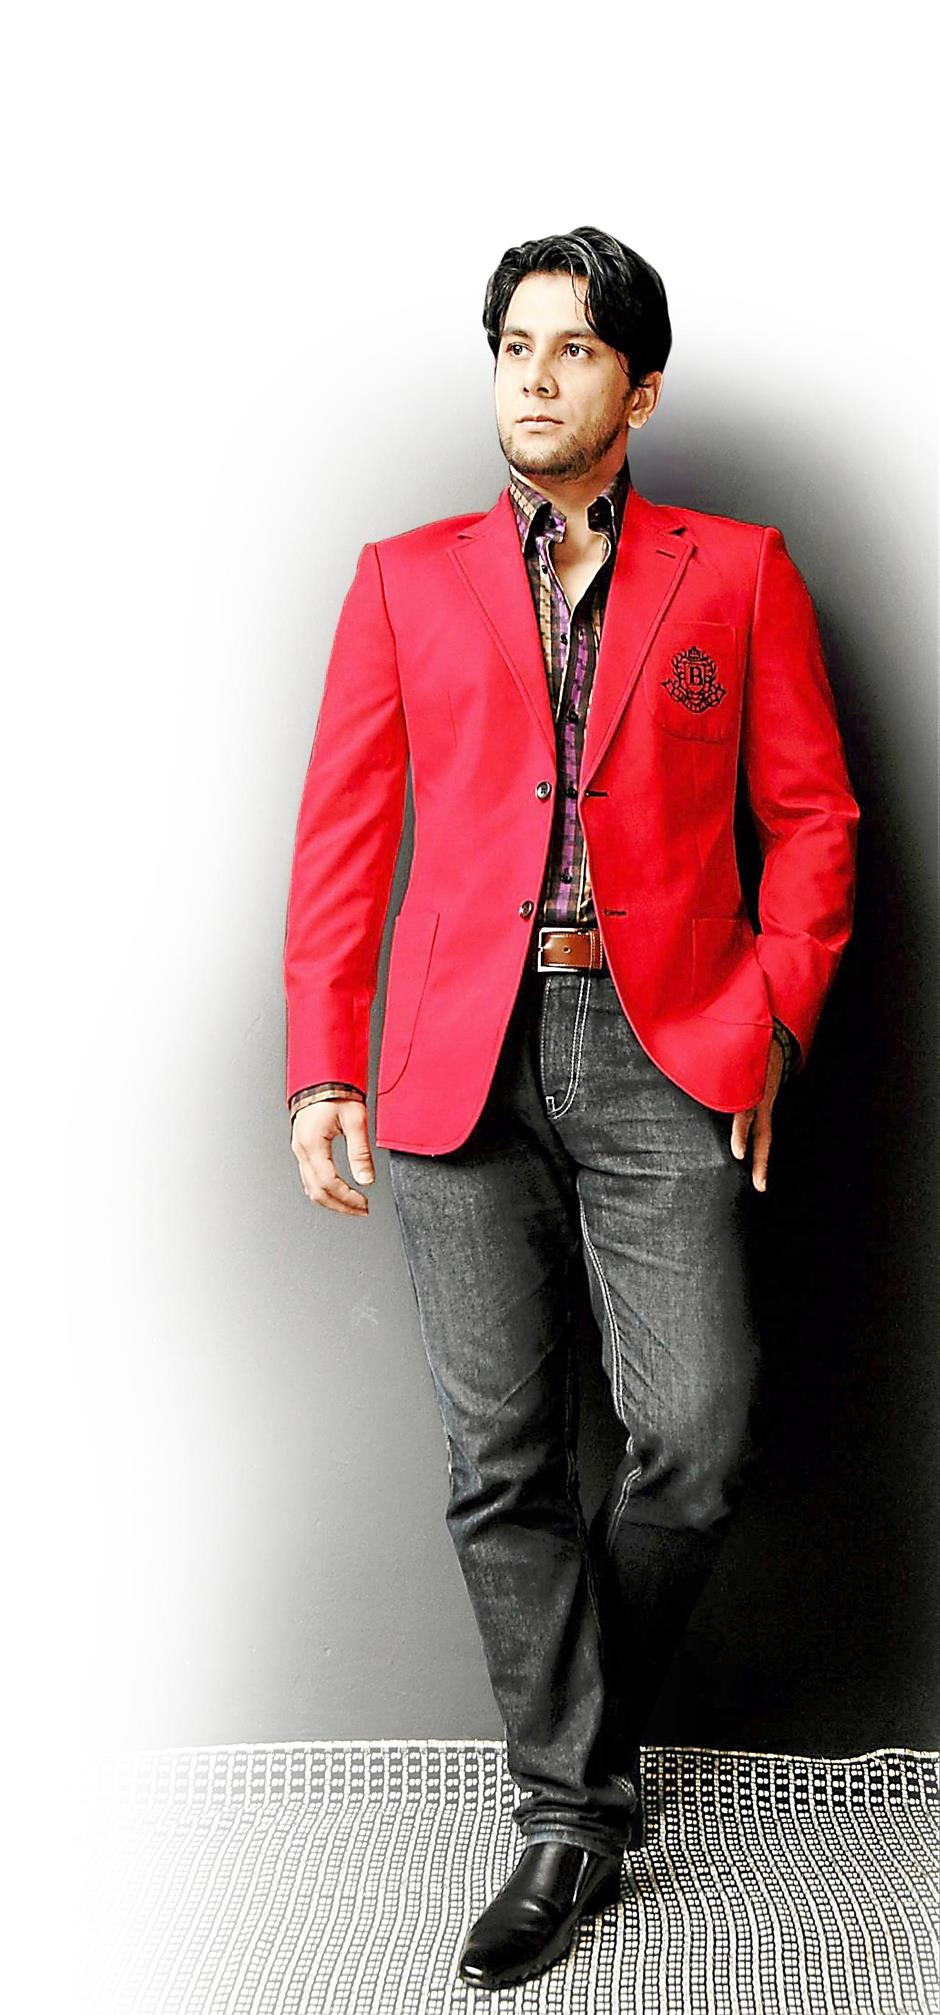 Director, actor, producer and writer Sein dresses up his outfit with a standout jacket from Bon Zainal.